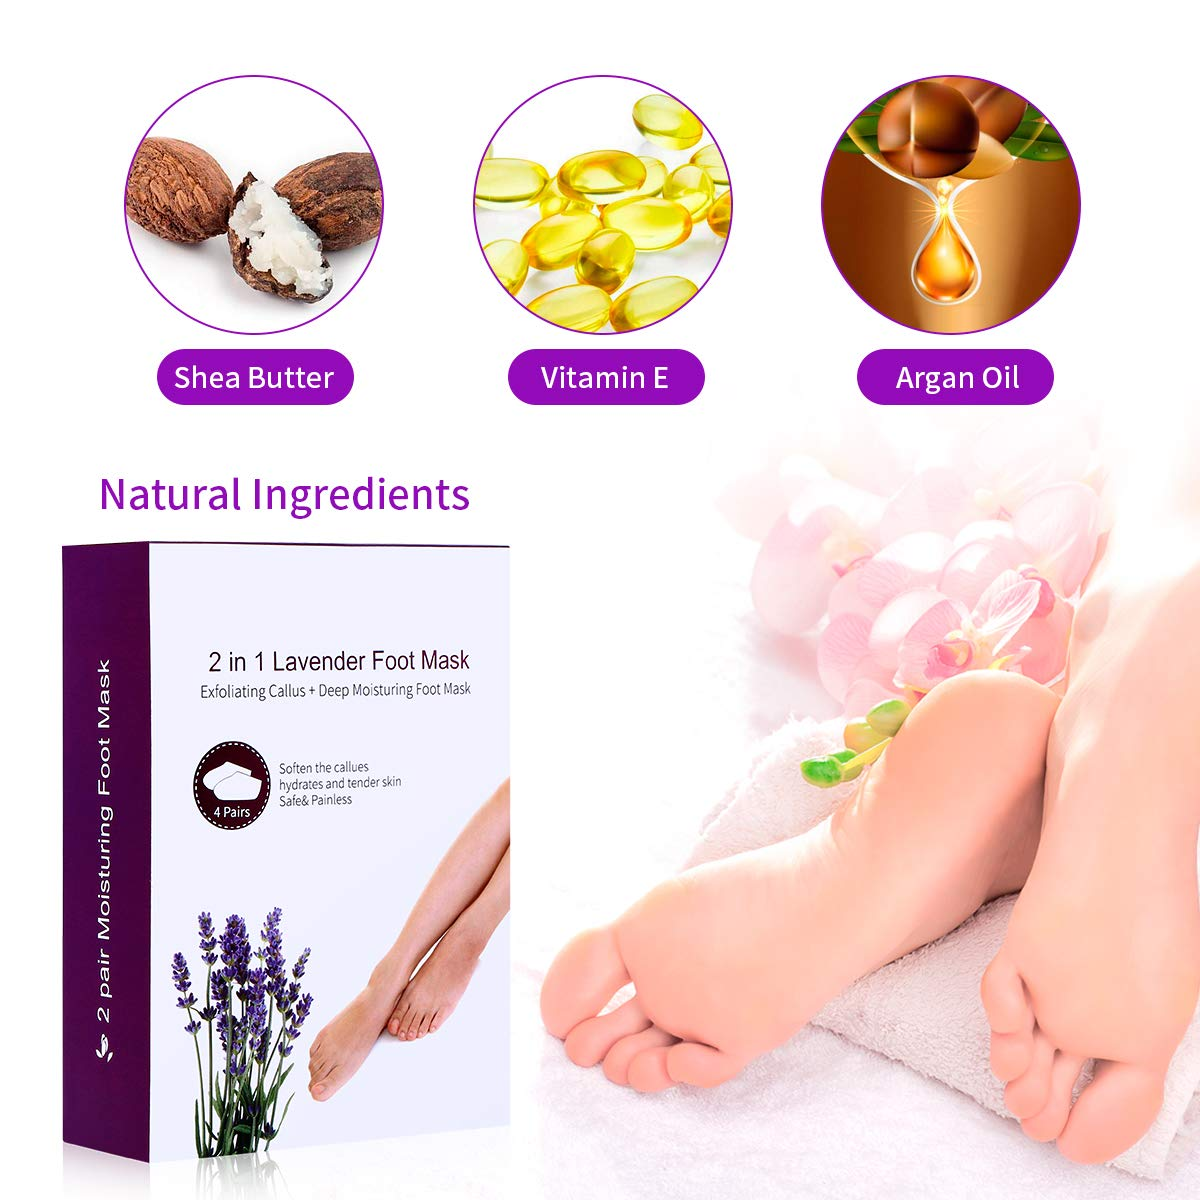 Foot Peeling Mask Remove Dead Skin Cells and Calluses-Lavender Moisturizing Foot Mask+ Exfoliating Foot Peel Mask Set for Men and Women (4 Pairs)